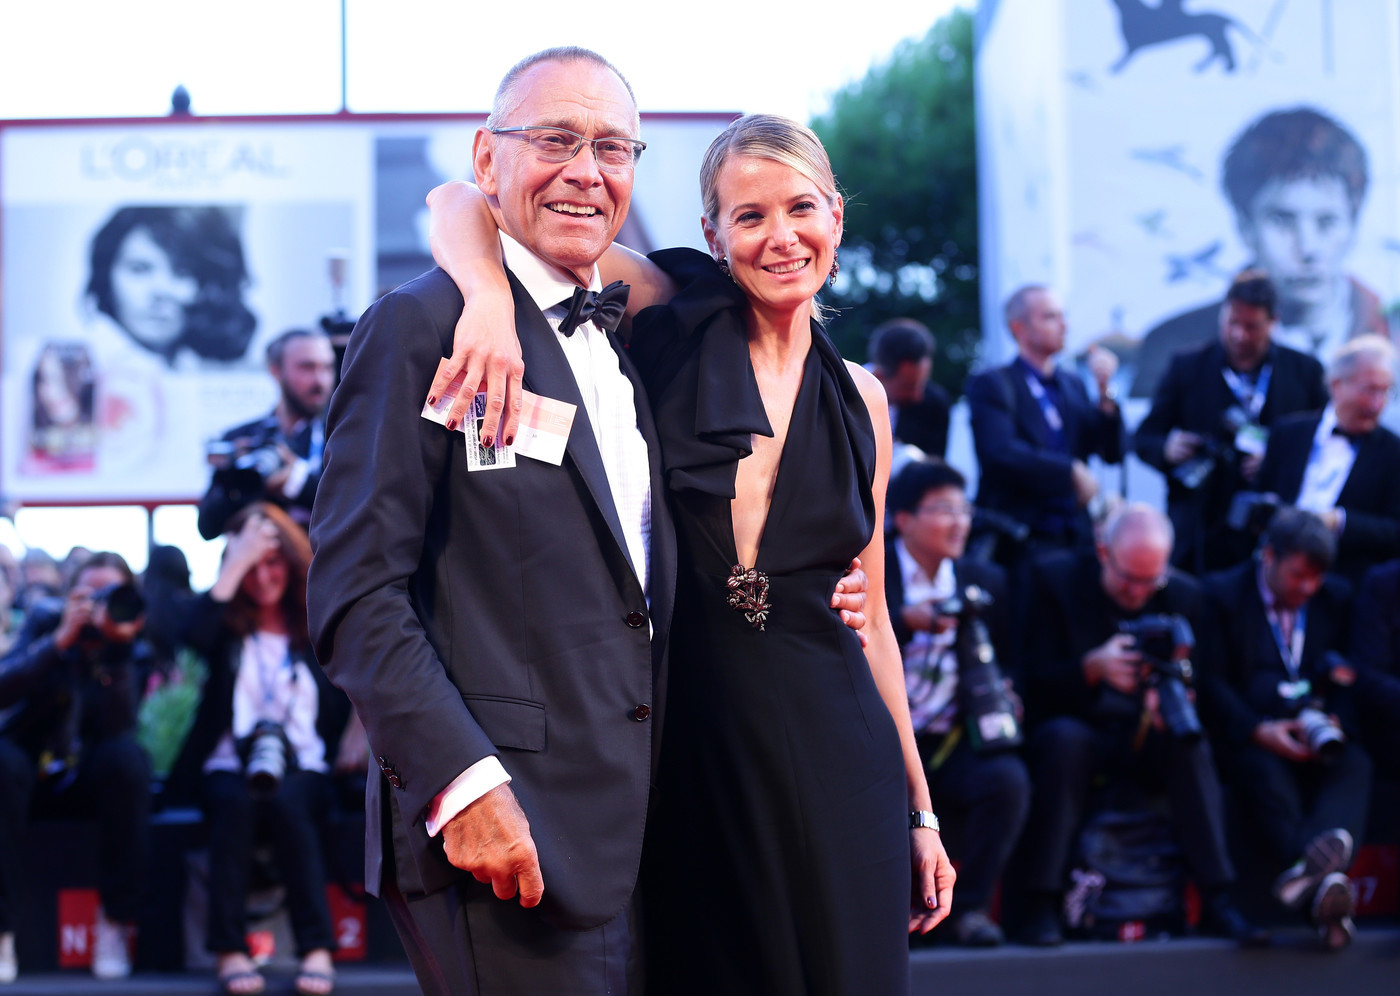 VENICE, ITALY - SEPTEMBER 06: DirectorAndrei Konchalovsky and wife Julia attend the Closing Ceremony of the 71st Venice Film Festival on September 6, 2014 in Venice, Italy. (Photo by Vittorio Zunino Celotto/Getty Images)